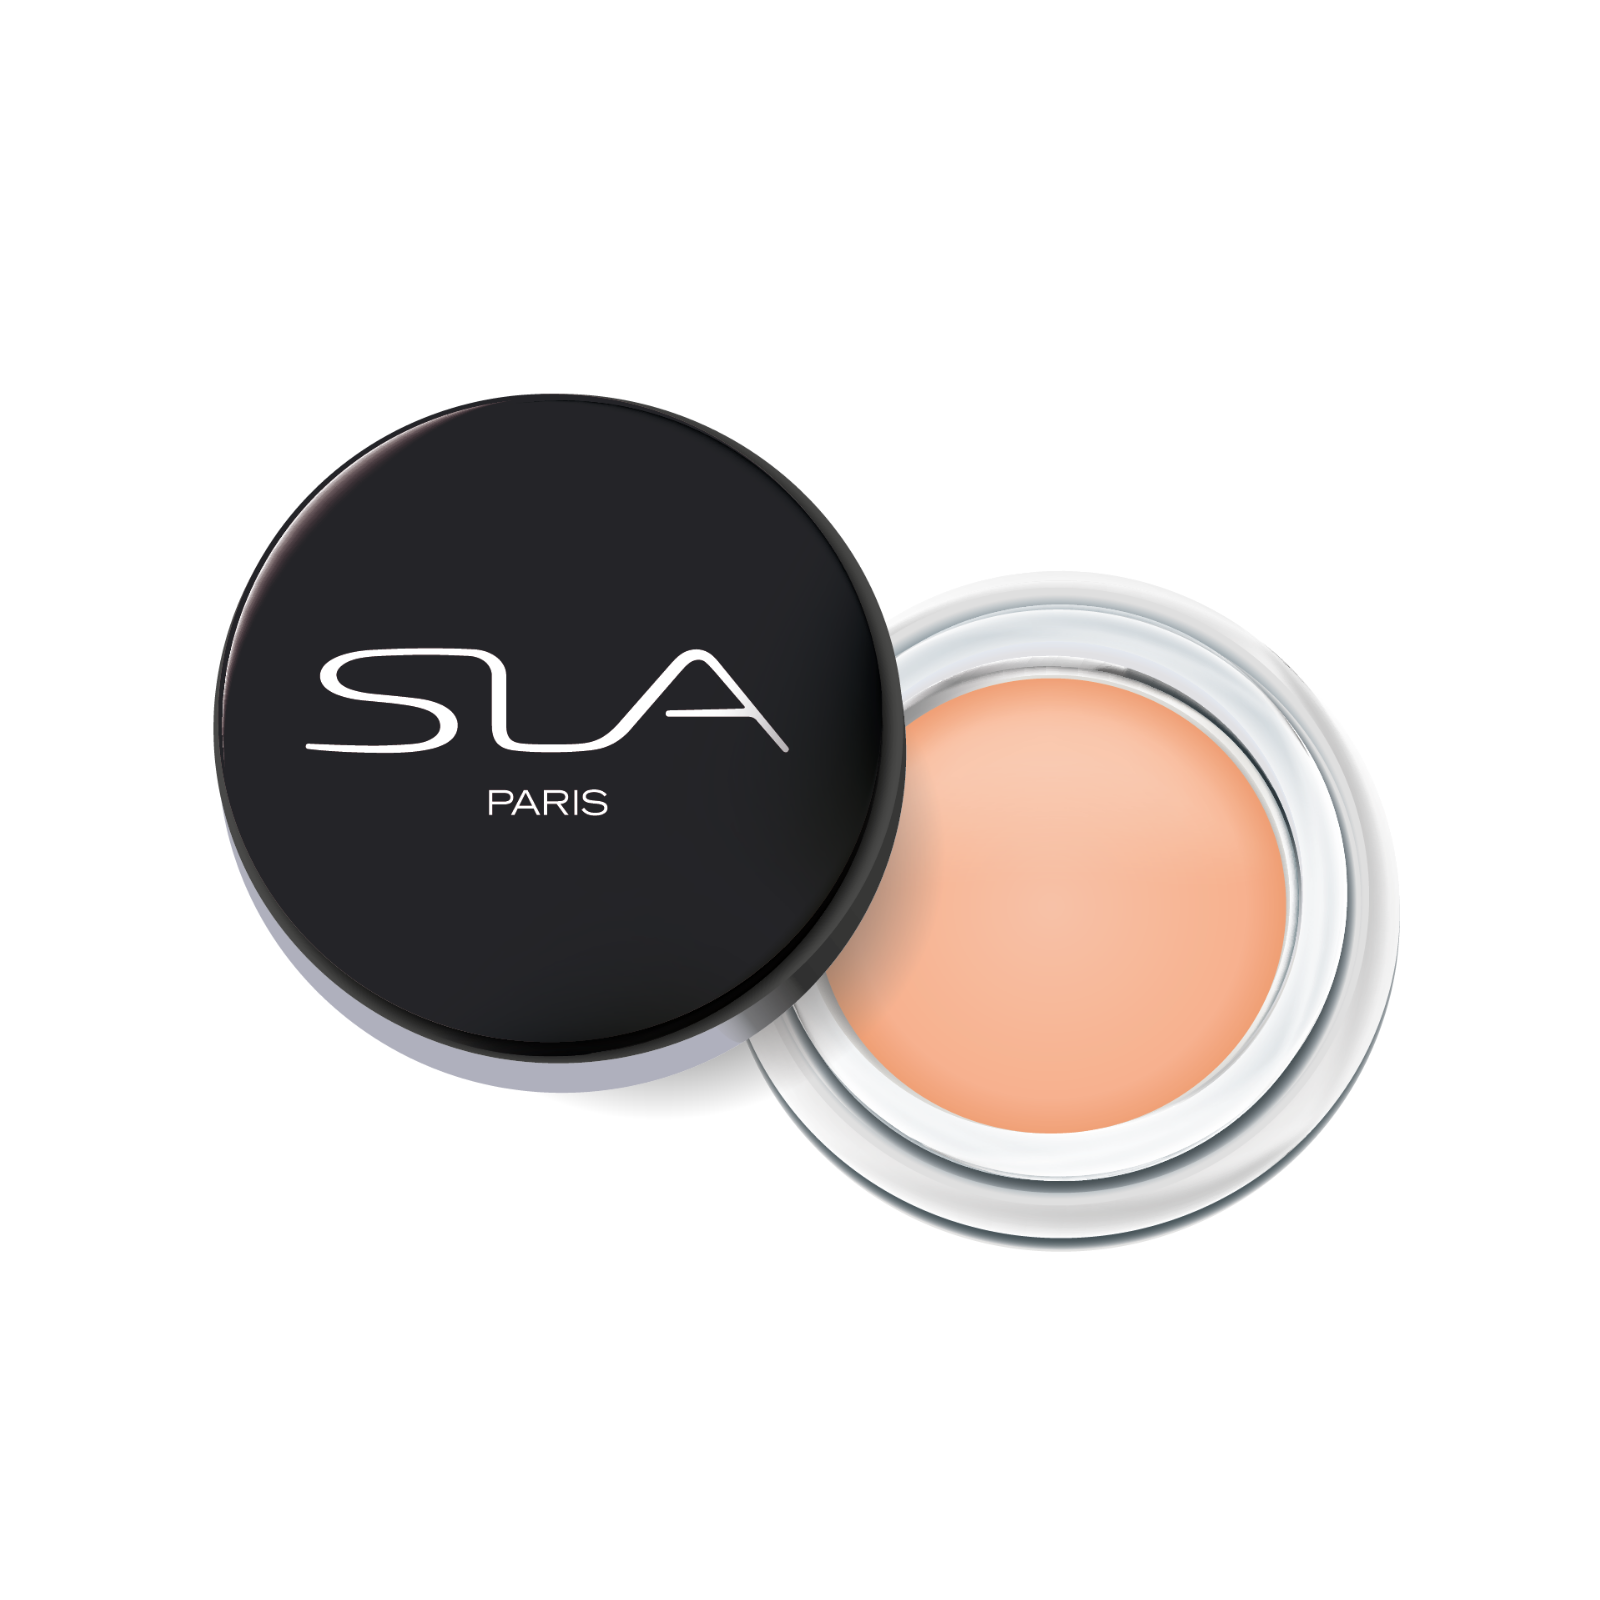 SLA Paris Ultimate Primer - Universal Nude